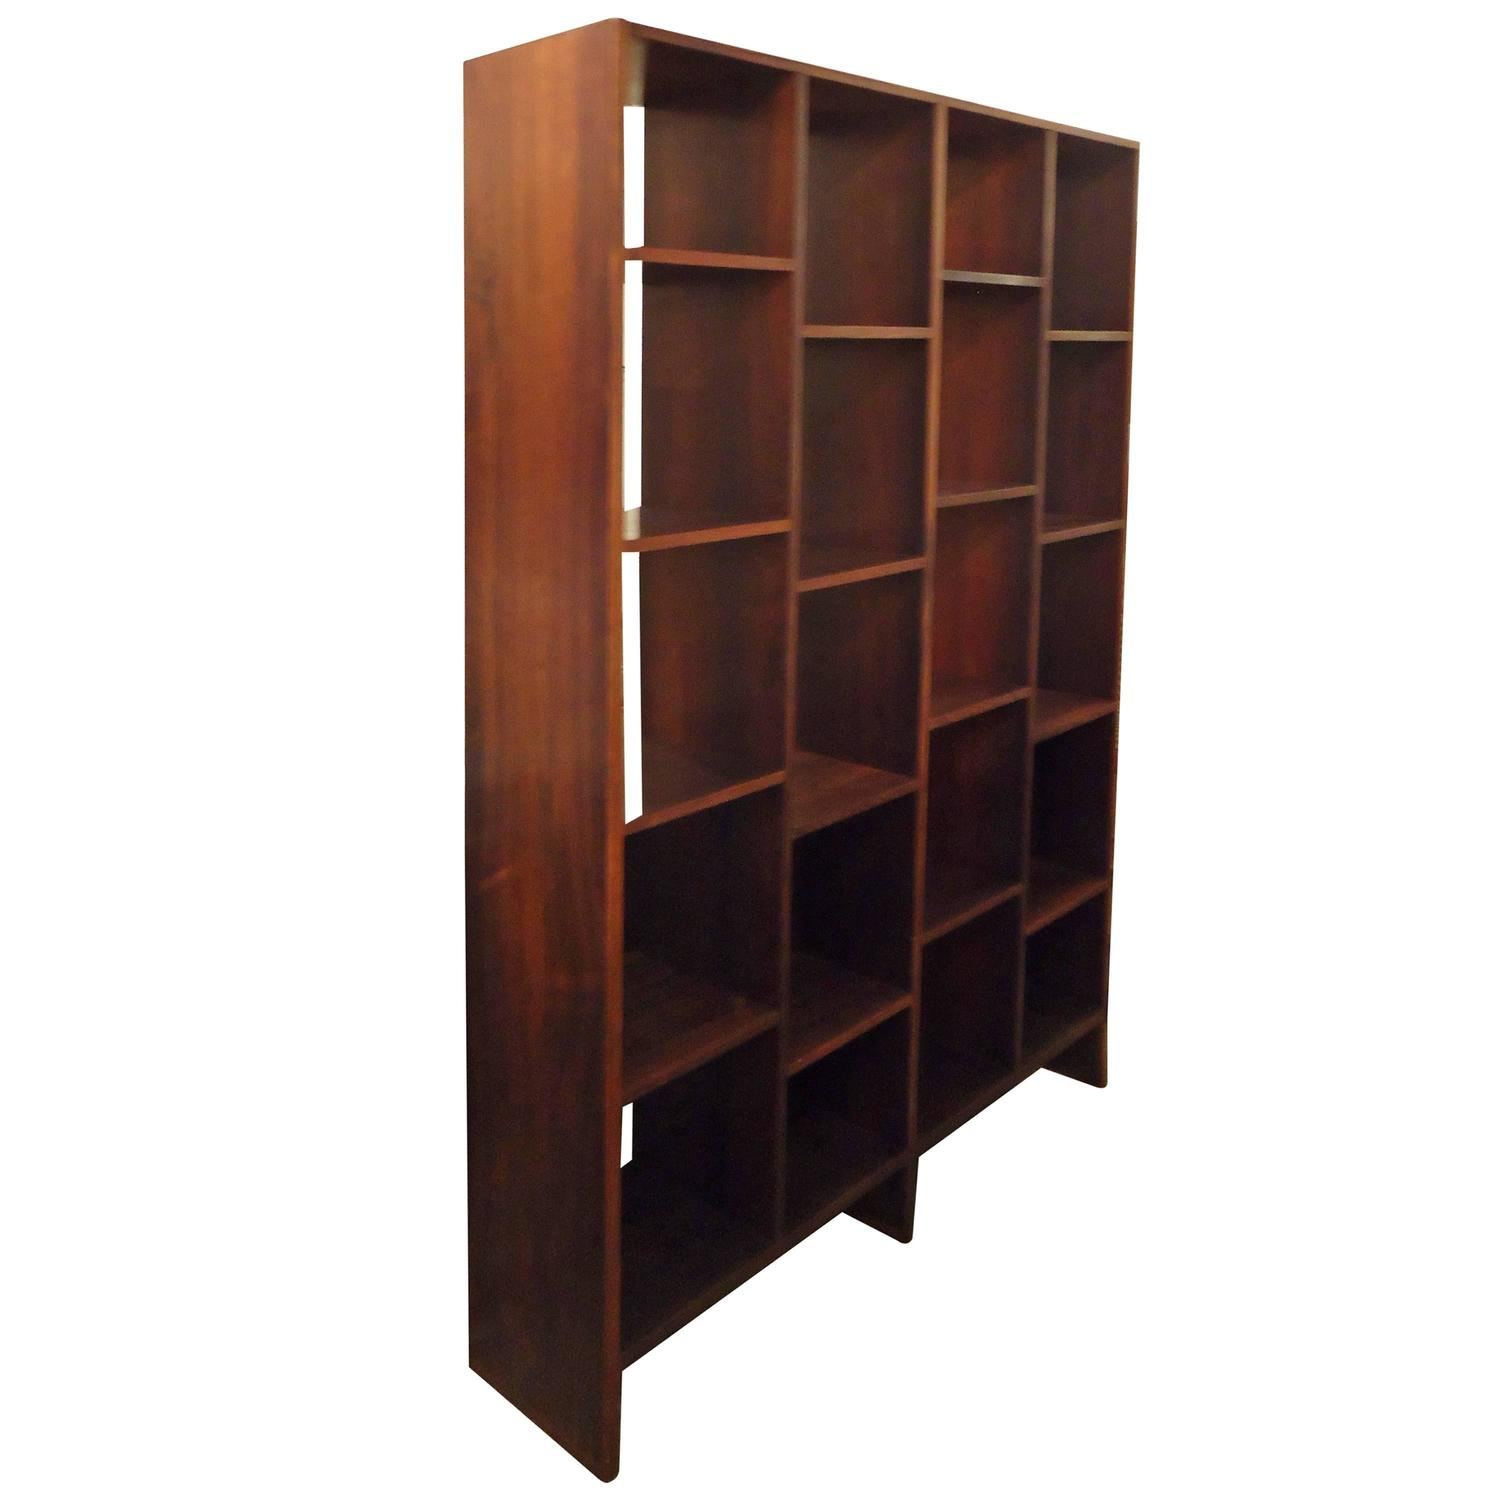 Danish rosewood room divider bookshelf at 1stdibs - Bookshelves as room divider ...